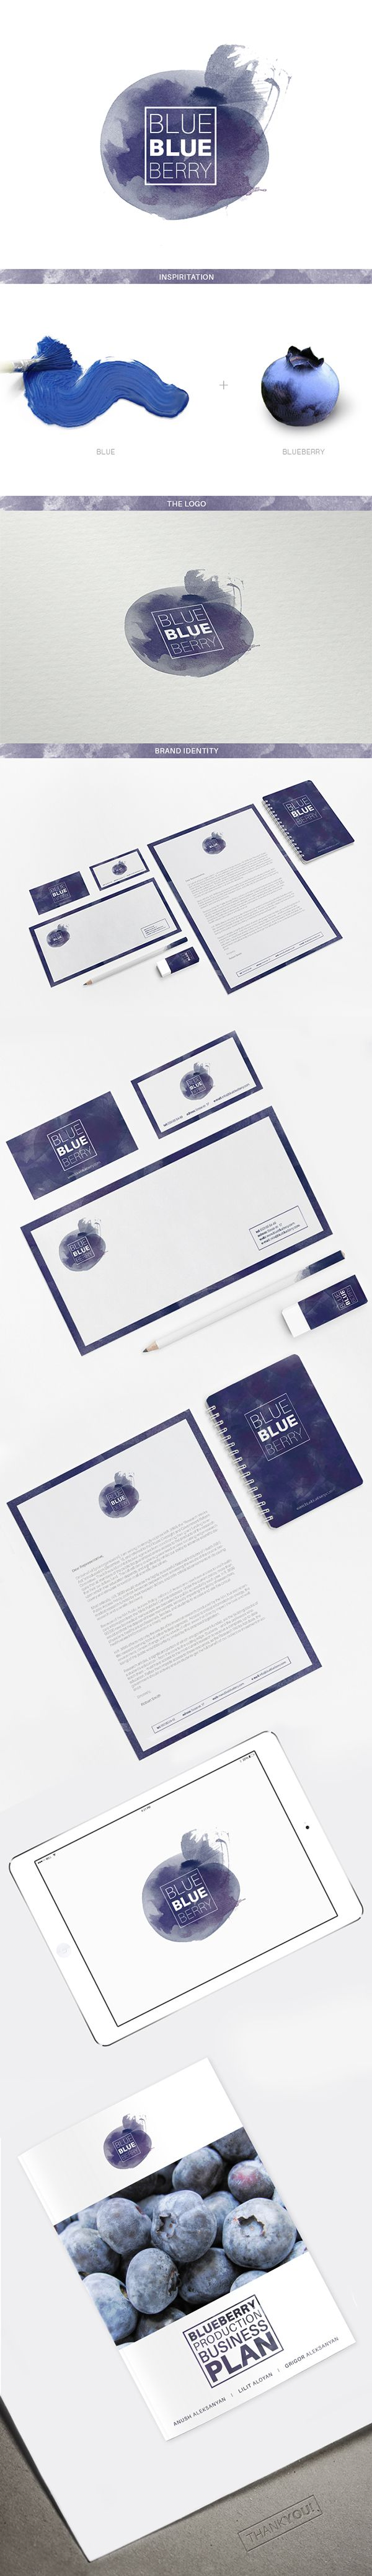 BlueBlueBerry / branding / brand boards / color / fonts / logo / graphic design